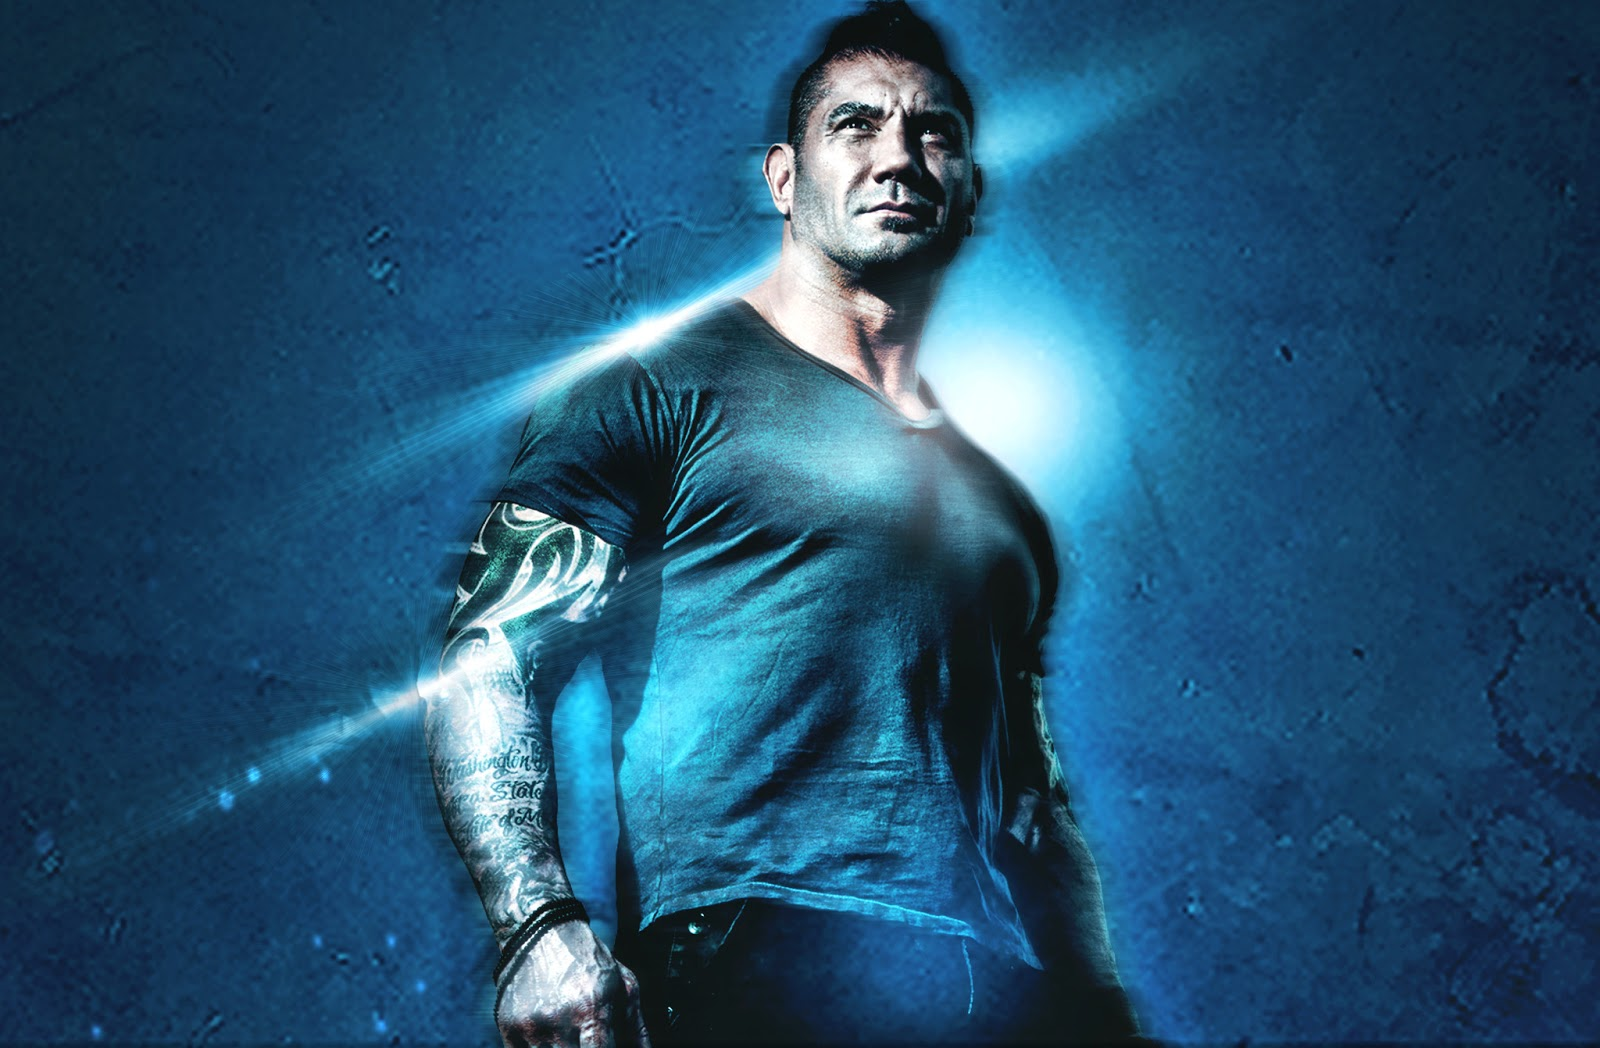 Dave Bautista Wallpapers